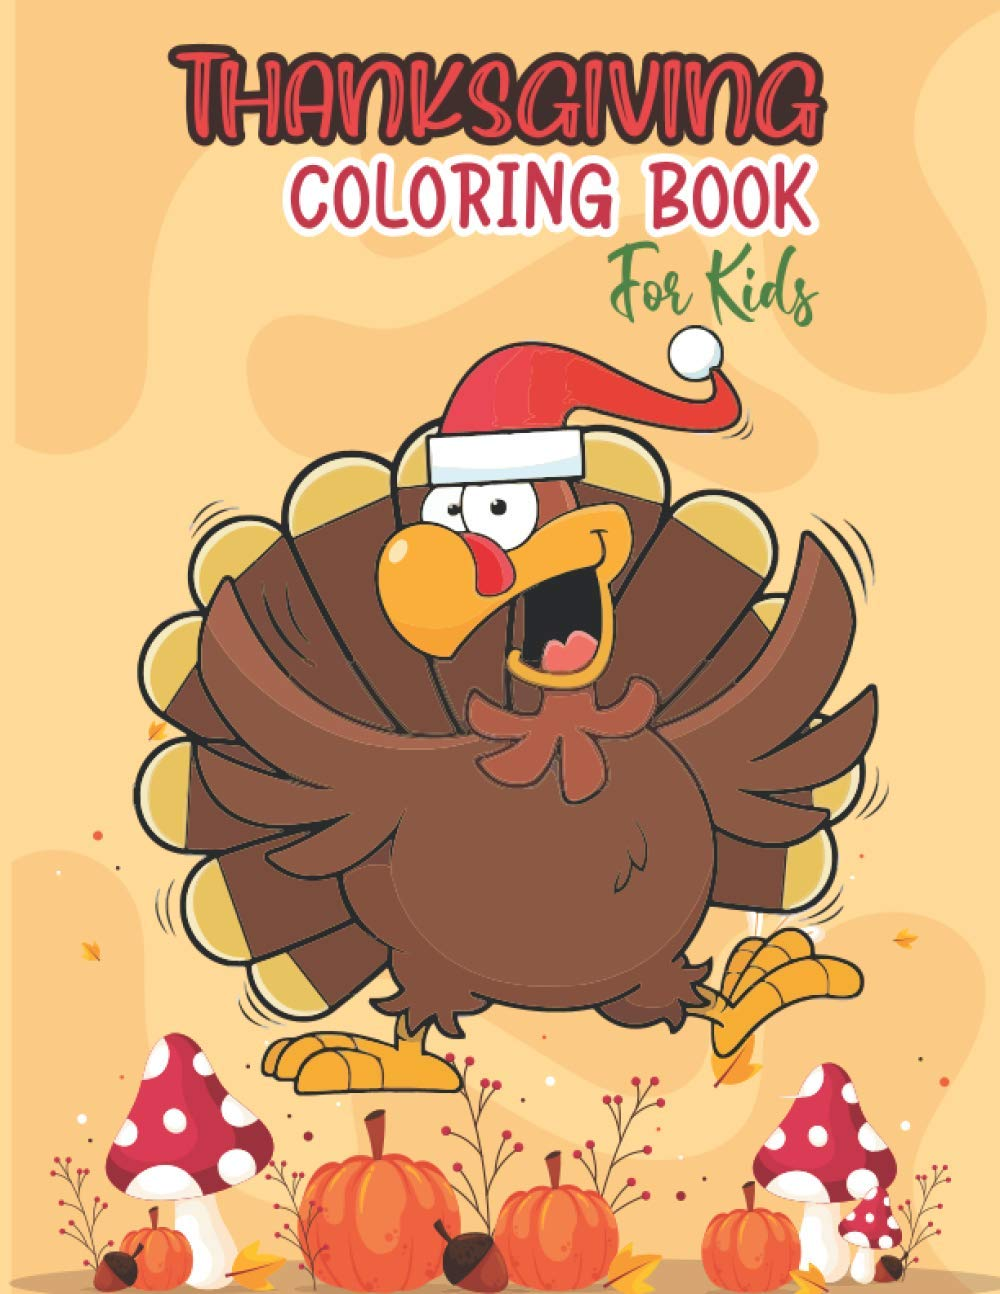 Thanksgiving Coloring Book For Kids Amazing And Easy Thanksgiving Turkey Coloring Pages For Children Boys Girls Toddlers And Preschool Specially Daughter Mom Dad Friends Ages 2 4 2 5 Publications Creative